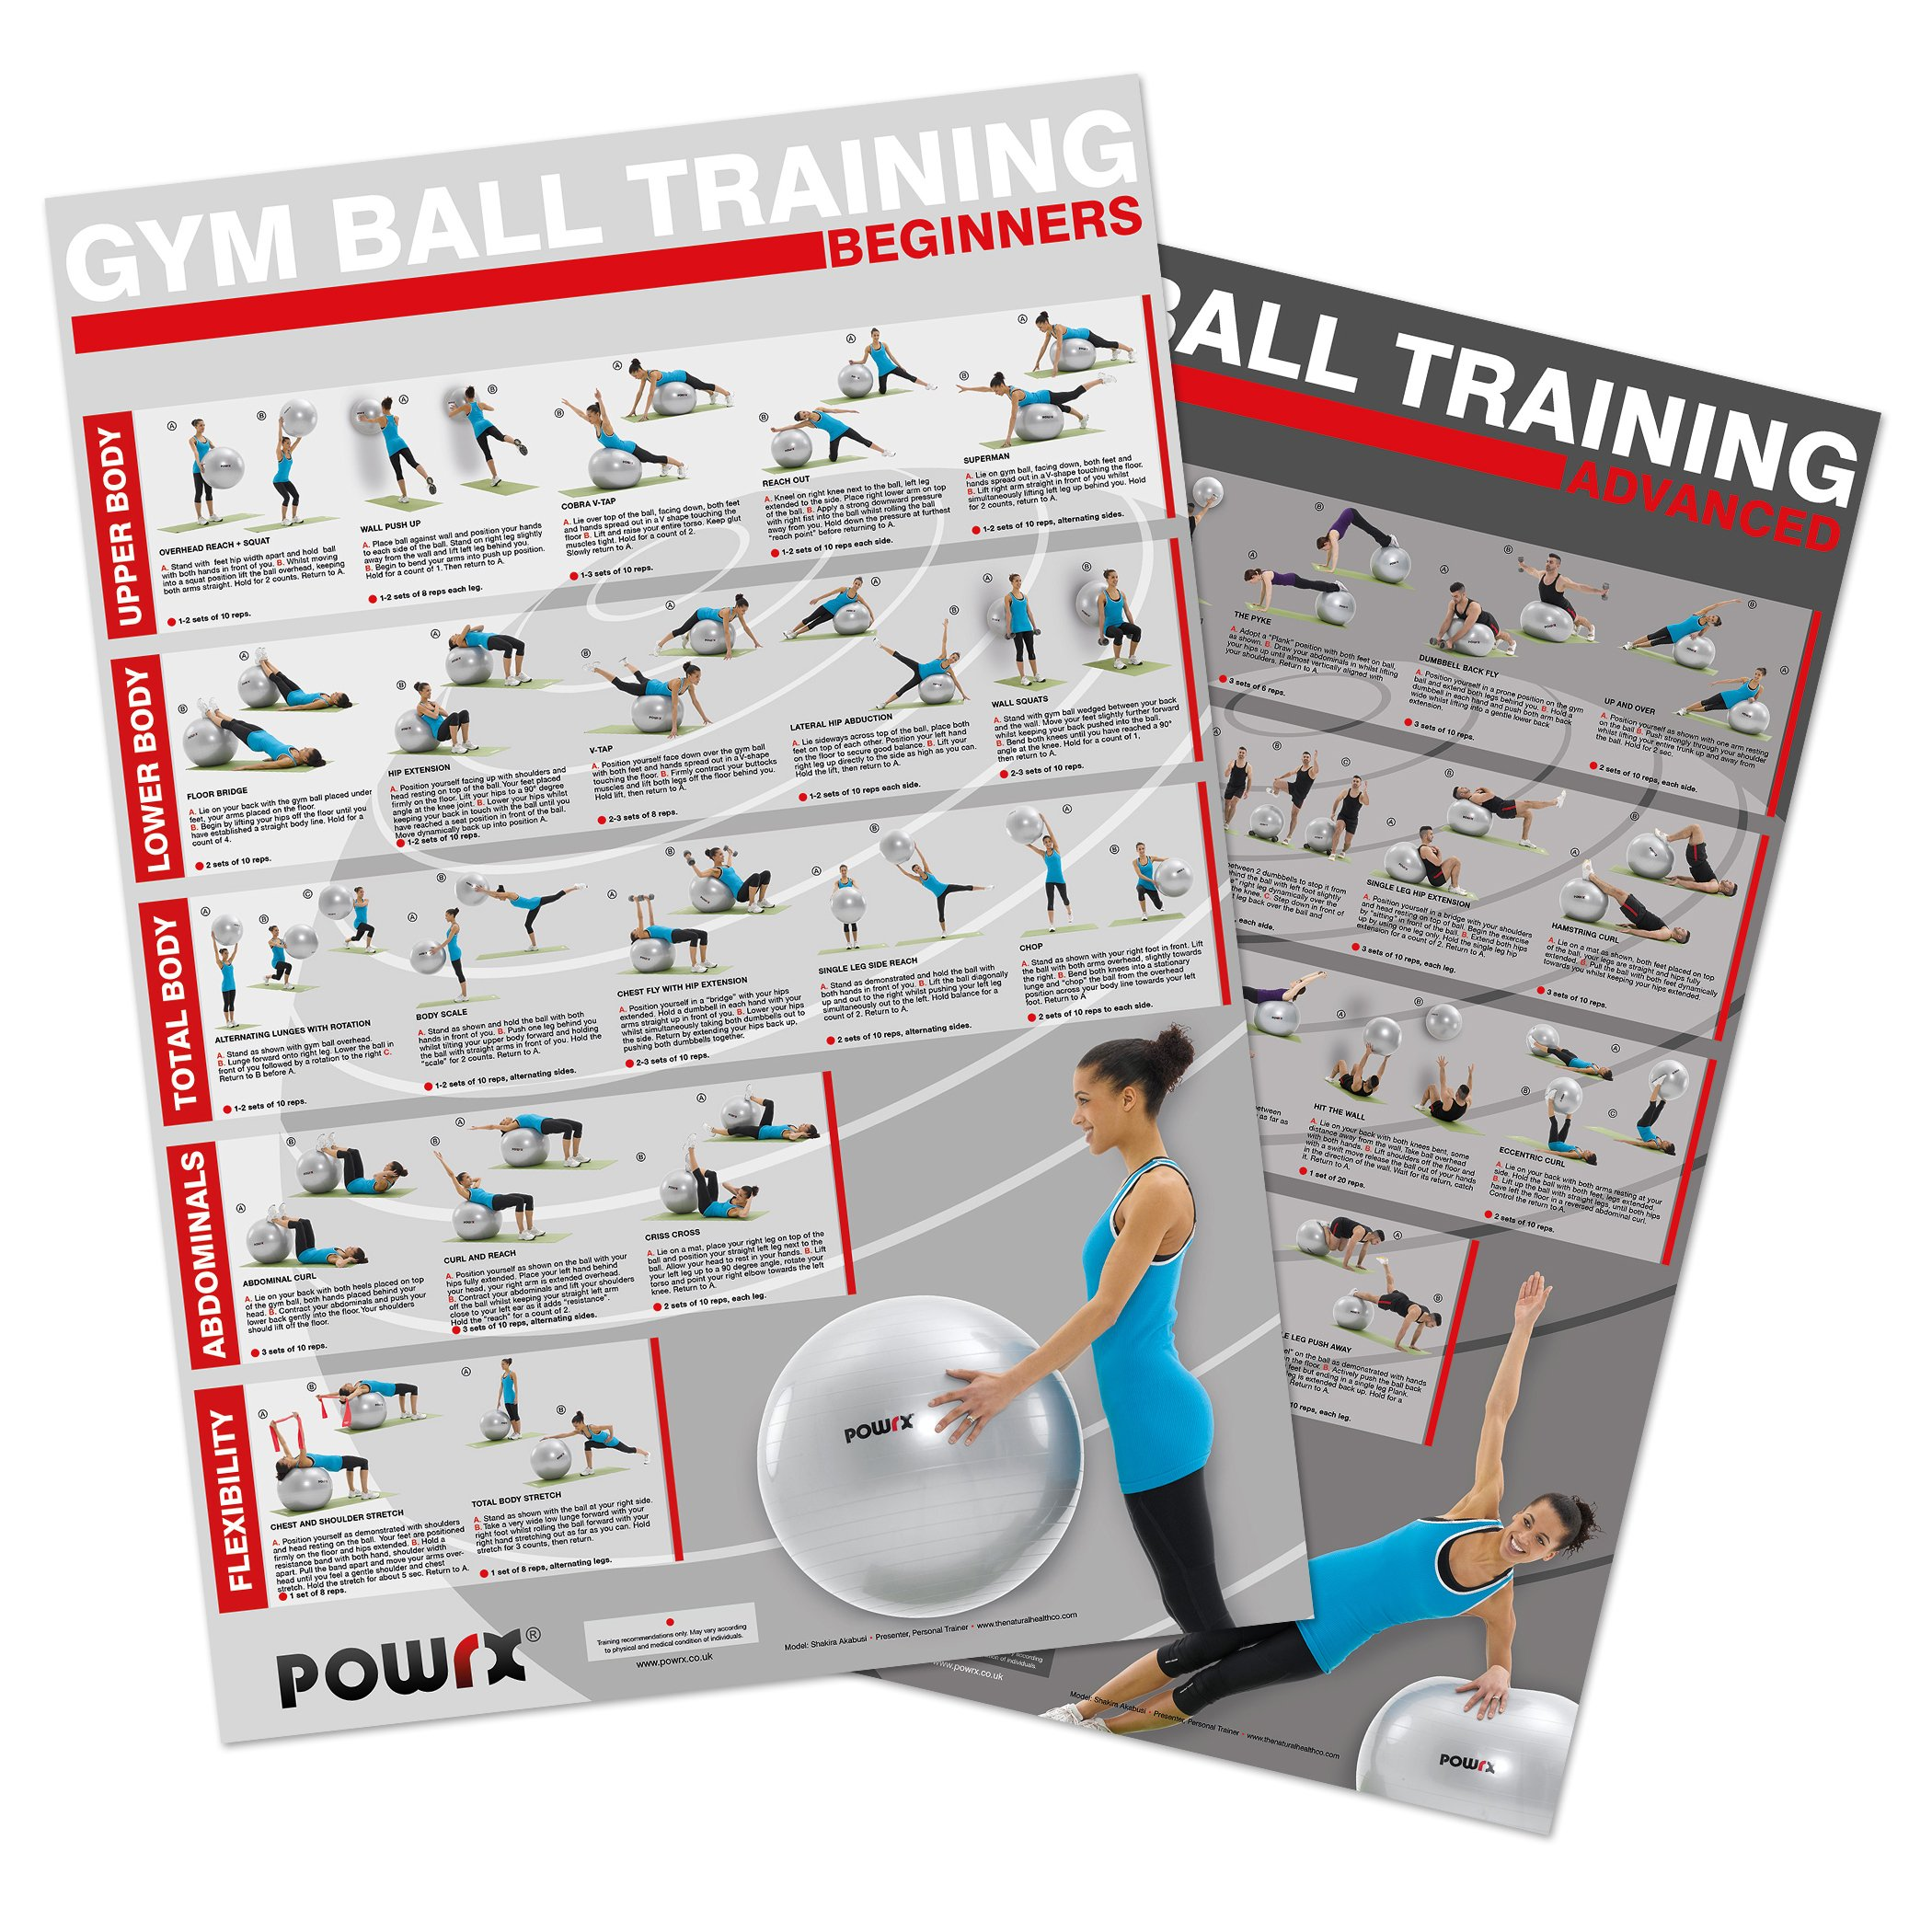 Gym Ball Exercise Yoga Ball Workout, Complete Body Workout. Set of 2 Charts, 40 new exercises with training guide in sets/reps.For upper body, legs and gluts, abs, core and flexibility.